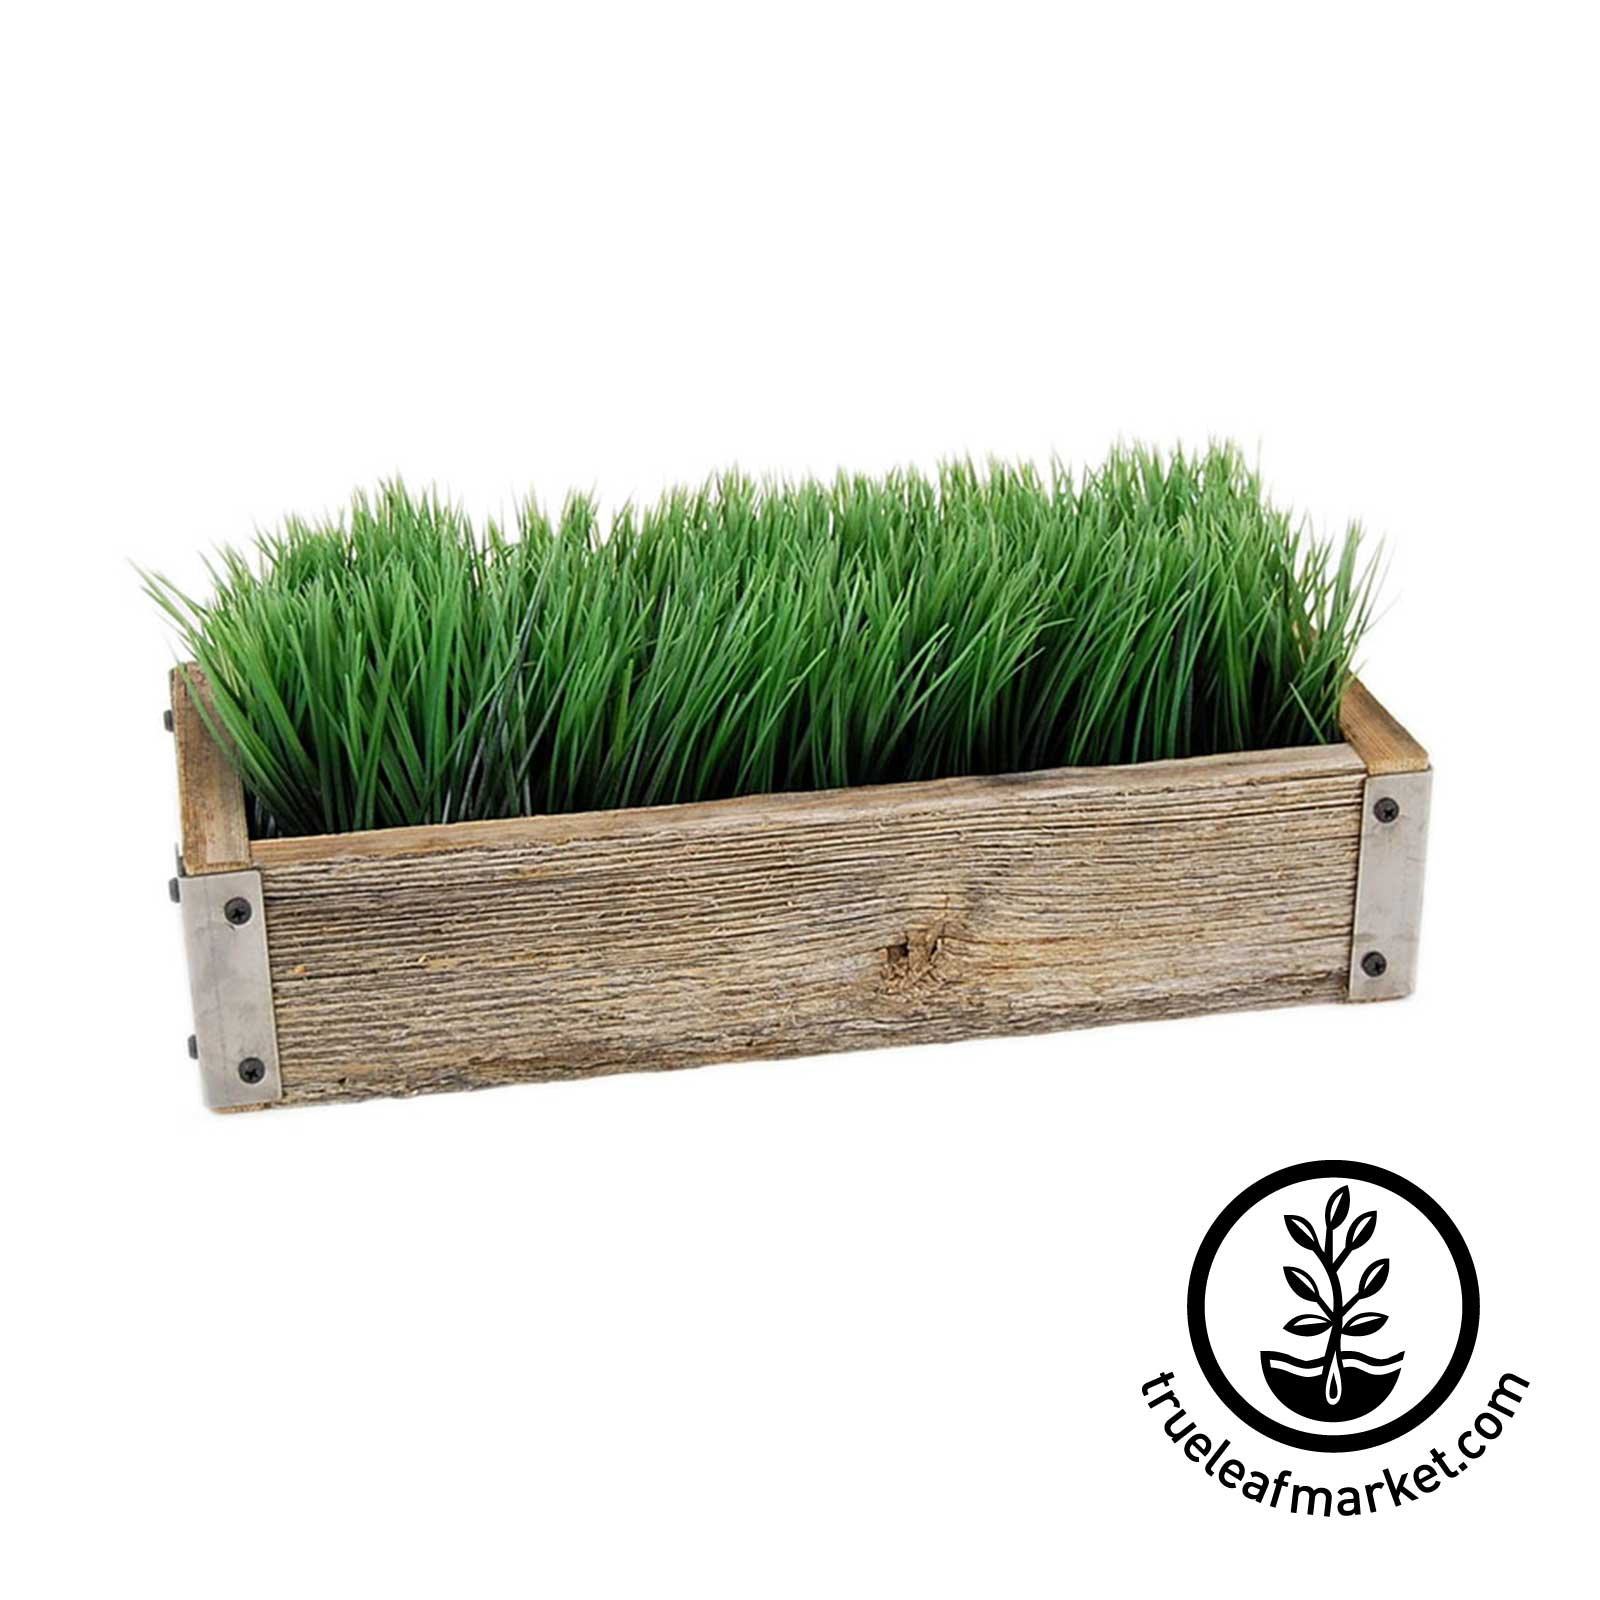 Barnwood Planter with Artificial Wheatgrass